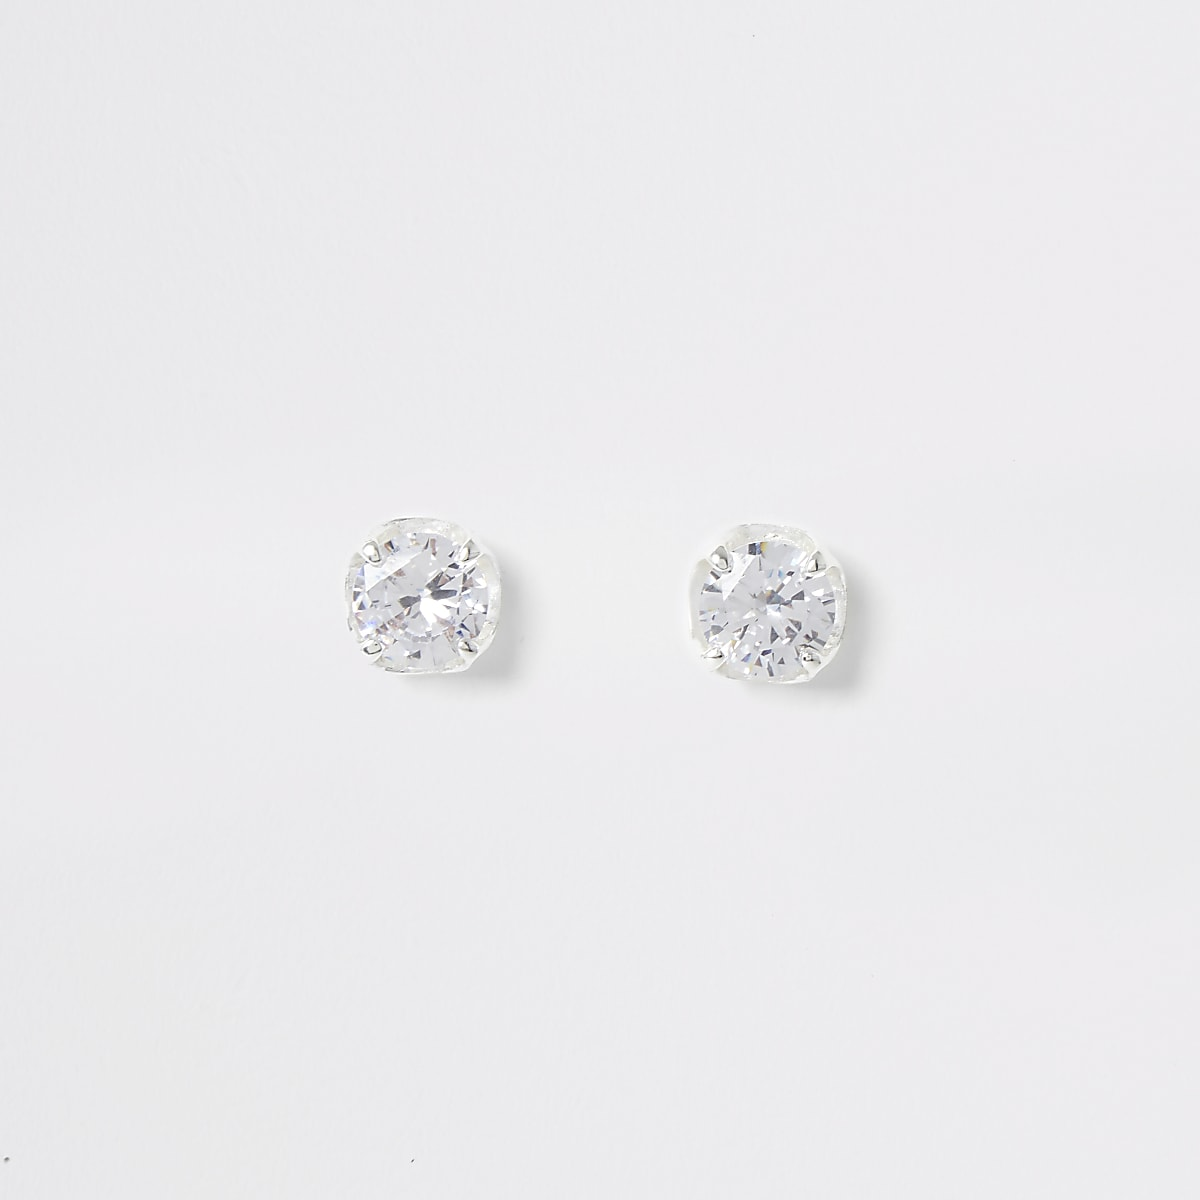 Silver colour cubic zirconia stud earrings